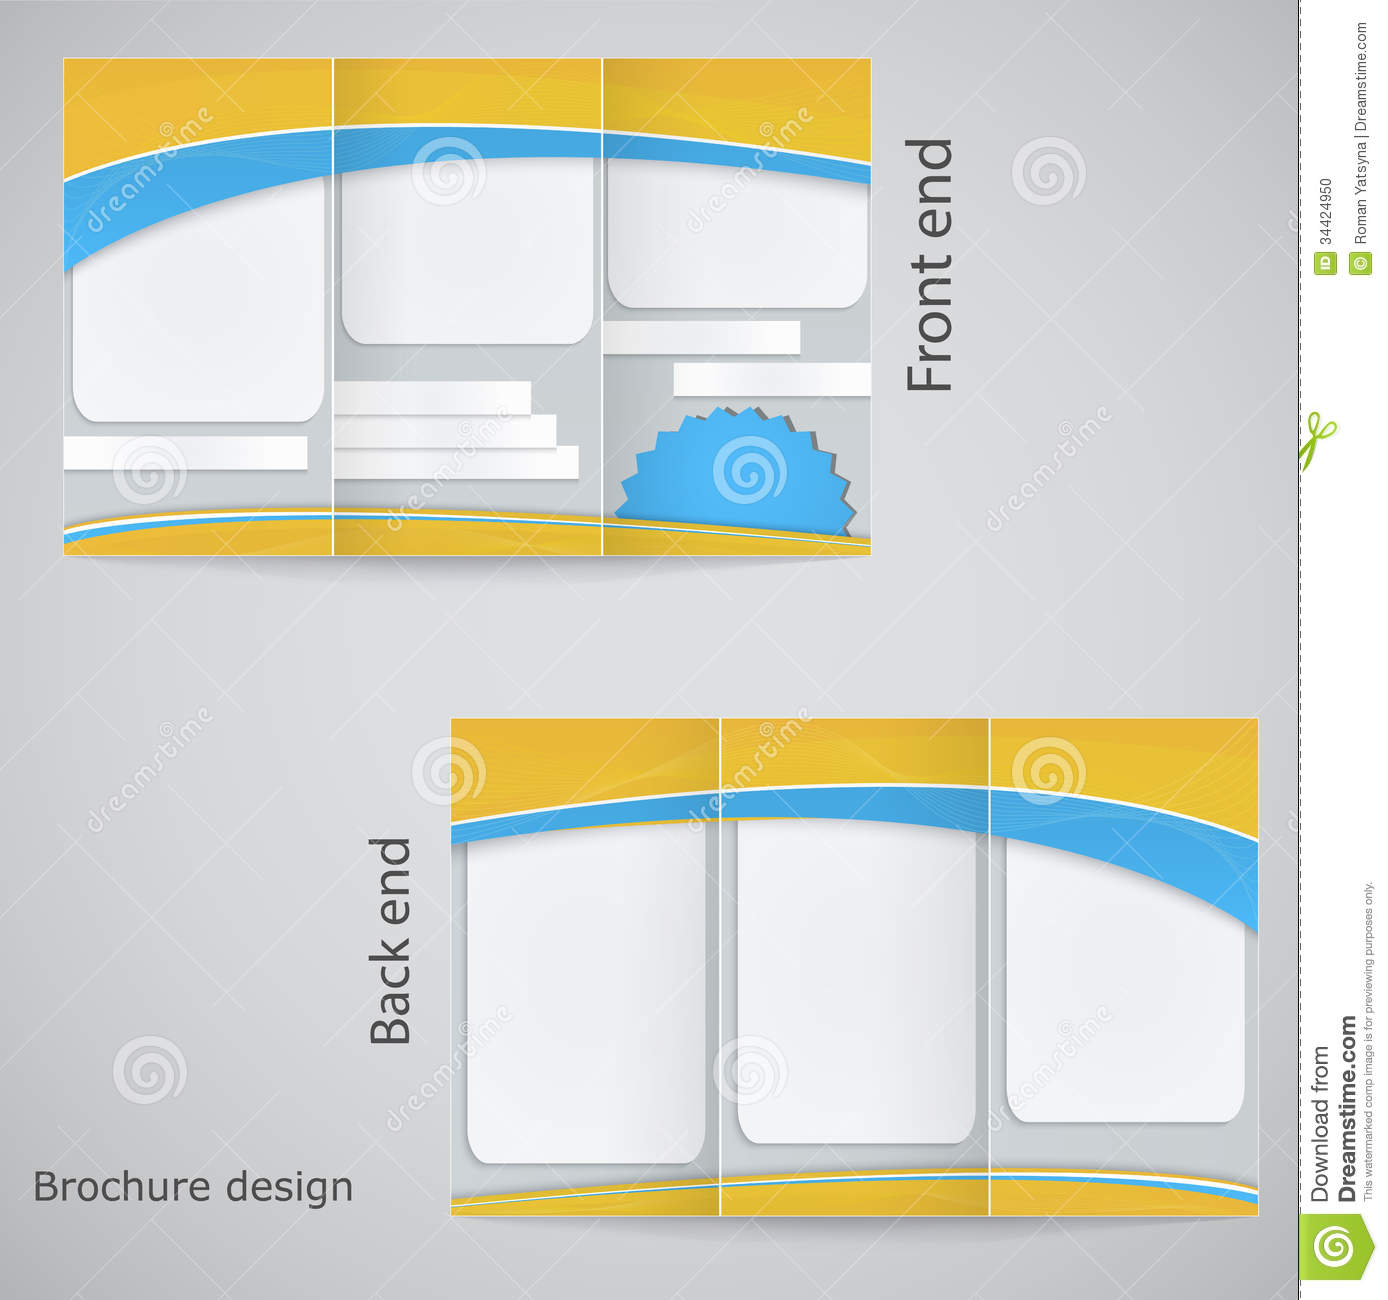 free tri fold brochure design templates - tri fold brochure design stock vector image of branding